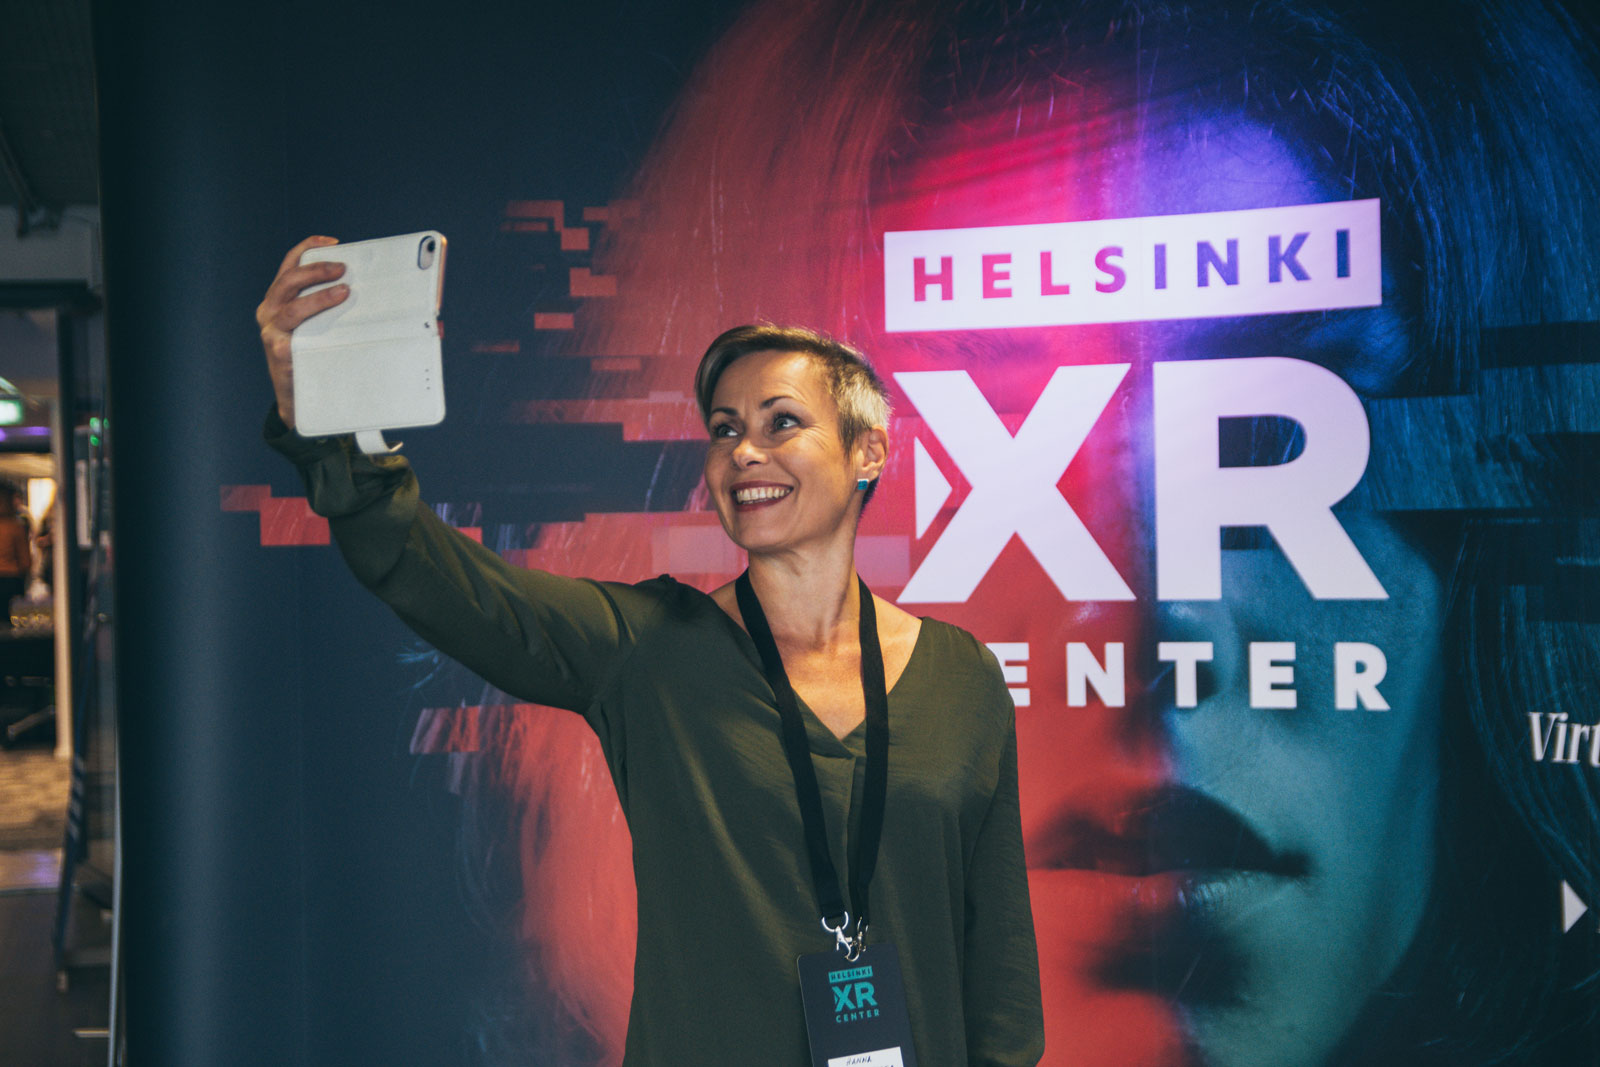 Hanna Pajala-Assefa from Skeleton Conductor taking a selfie with Helsinki XR Center banner at HXRC Grand Opening on 5 September 2019.